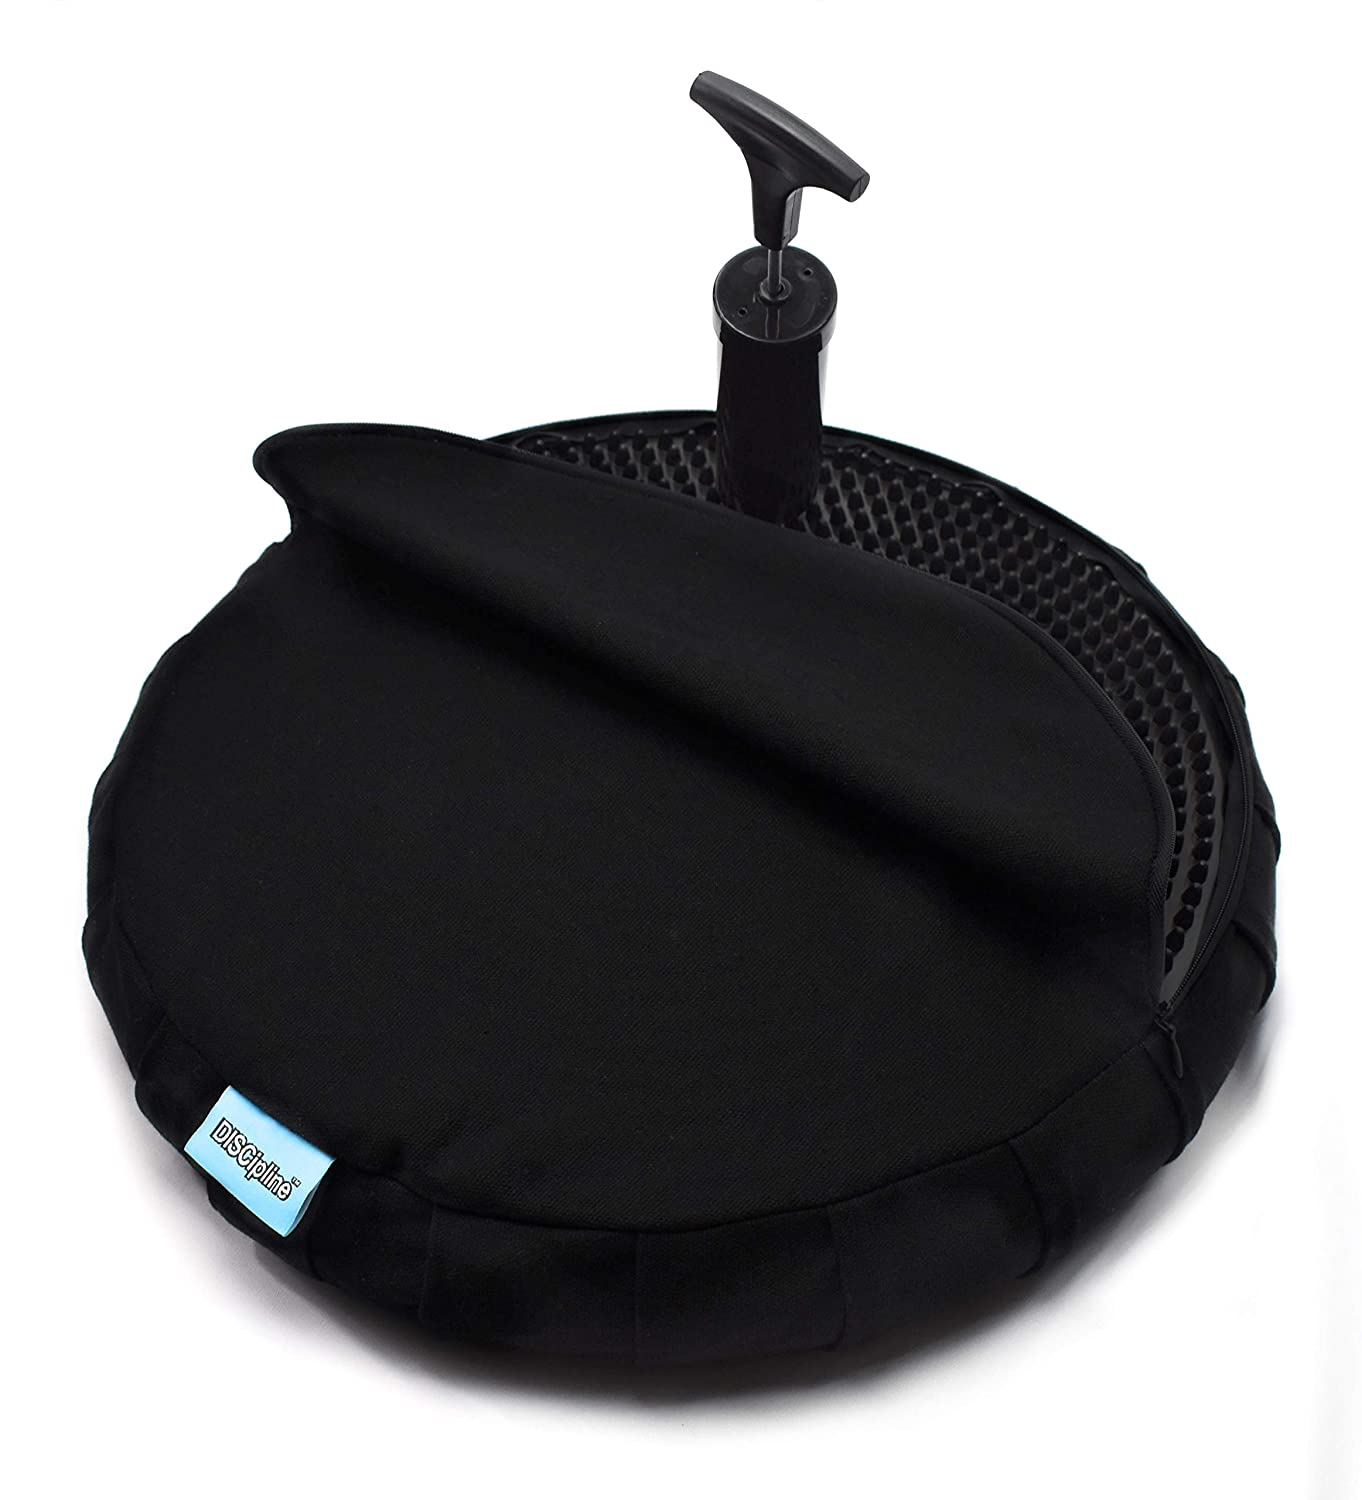 Discipline Adult & Teen Stability Wobble Cushion with Designer Cover & Free Pump - Oversized Extra Large 14.75 inch - for The Office or School - Balance Disc - Wiggle Seat - Back Lumbar Support